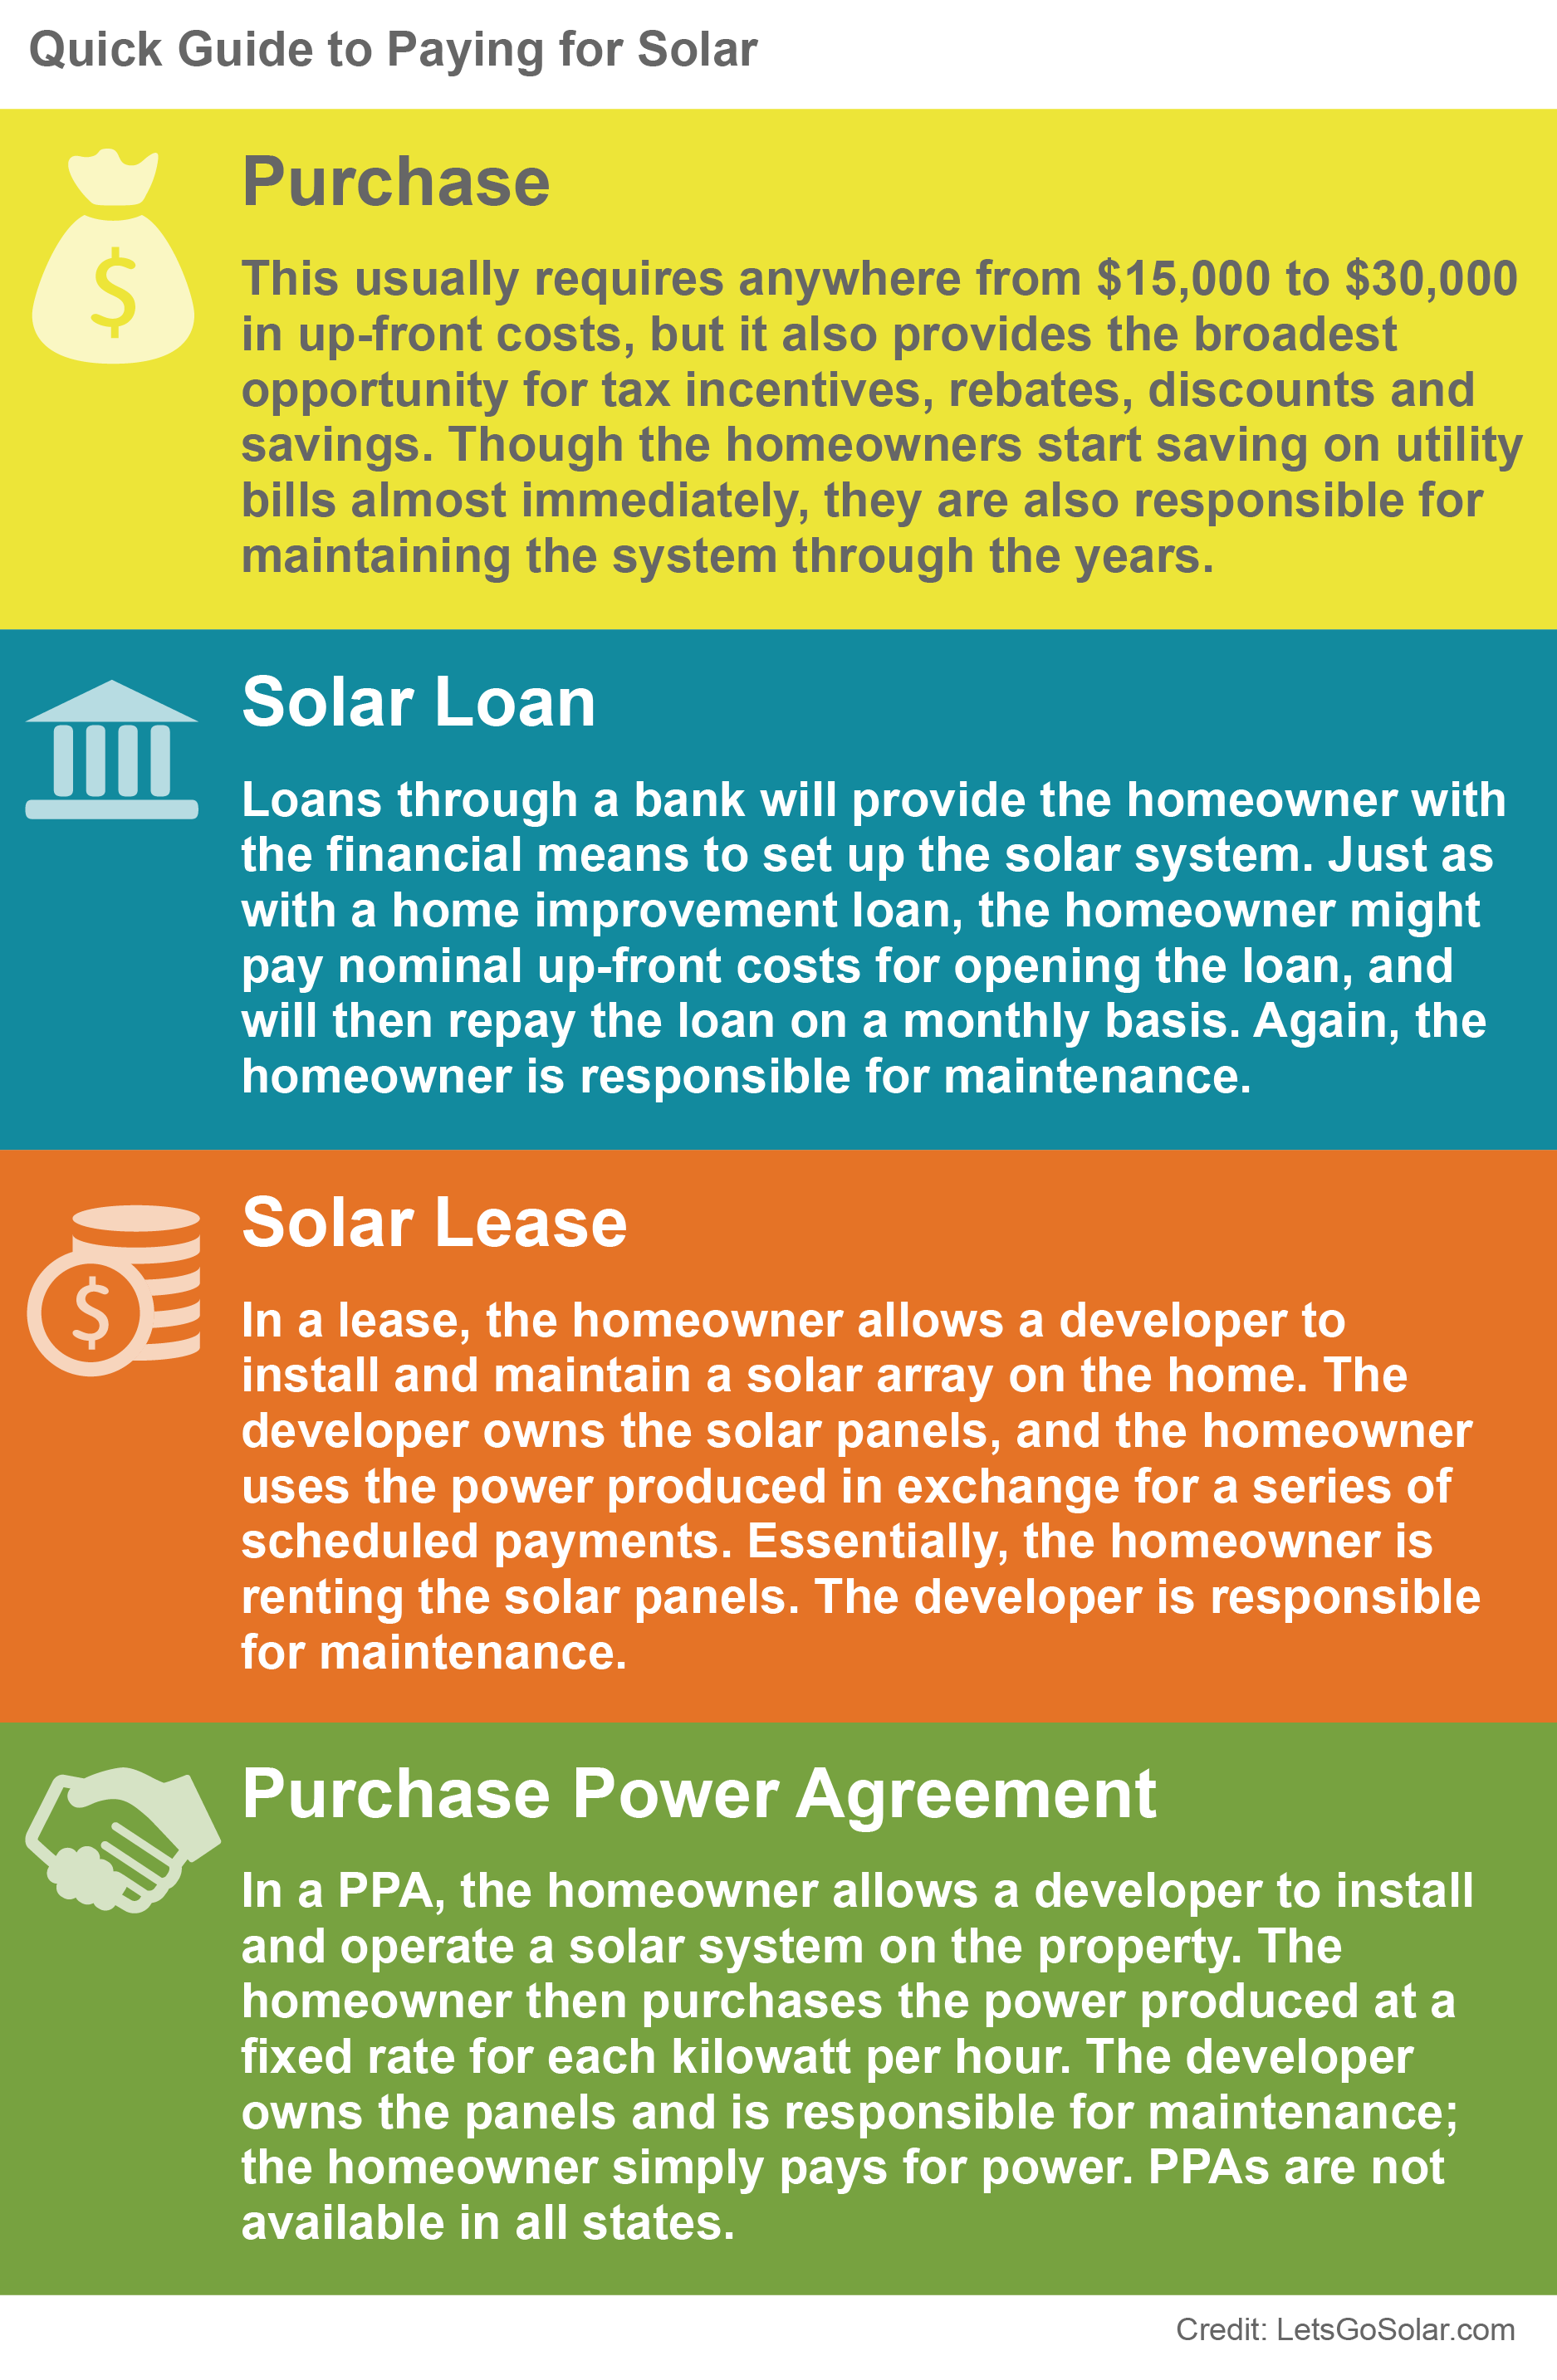 Quick guide to paying for solar